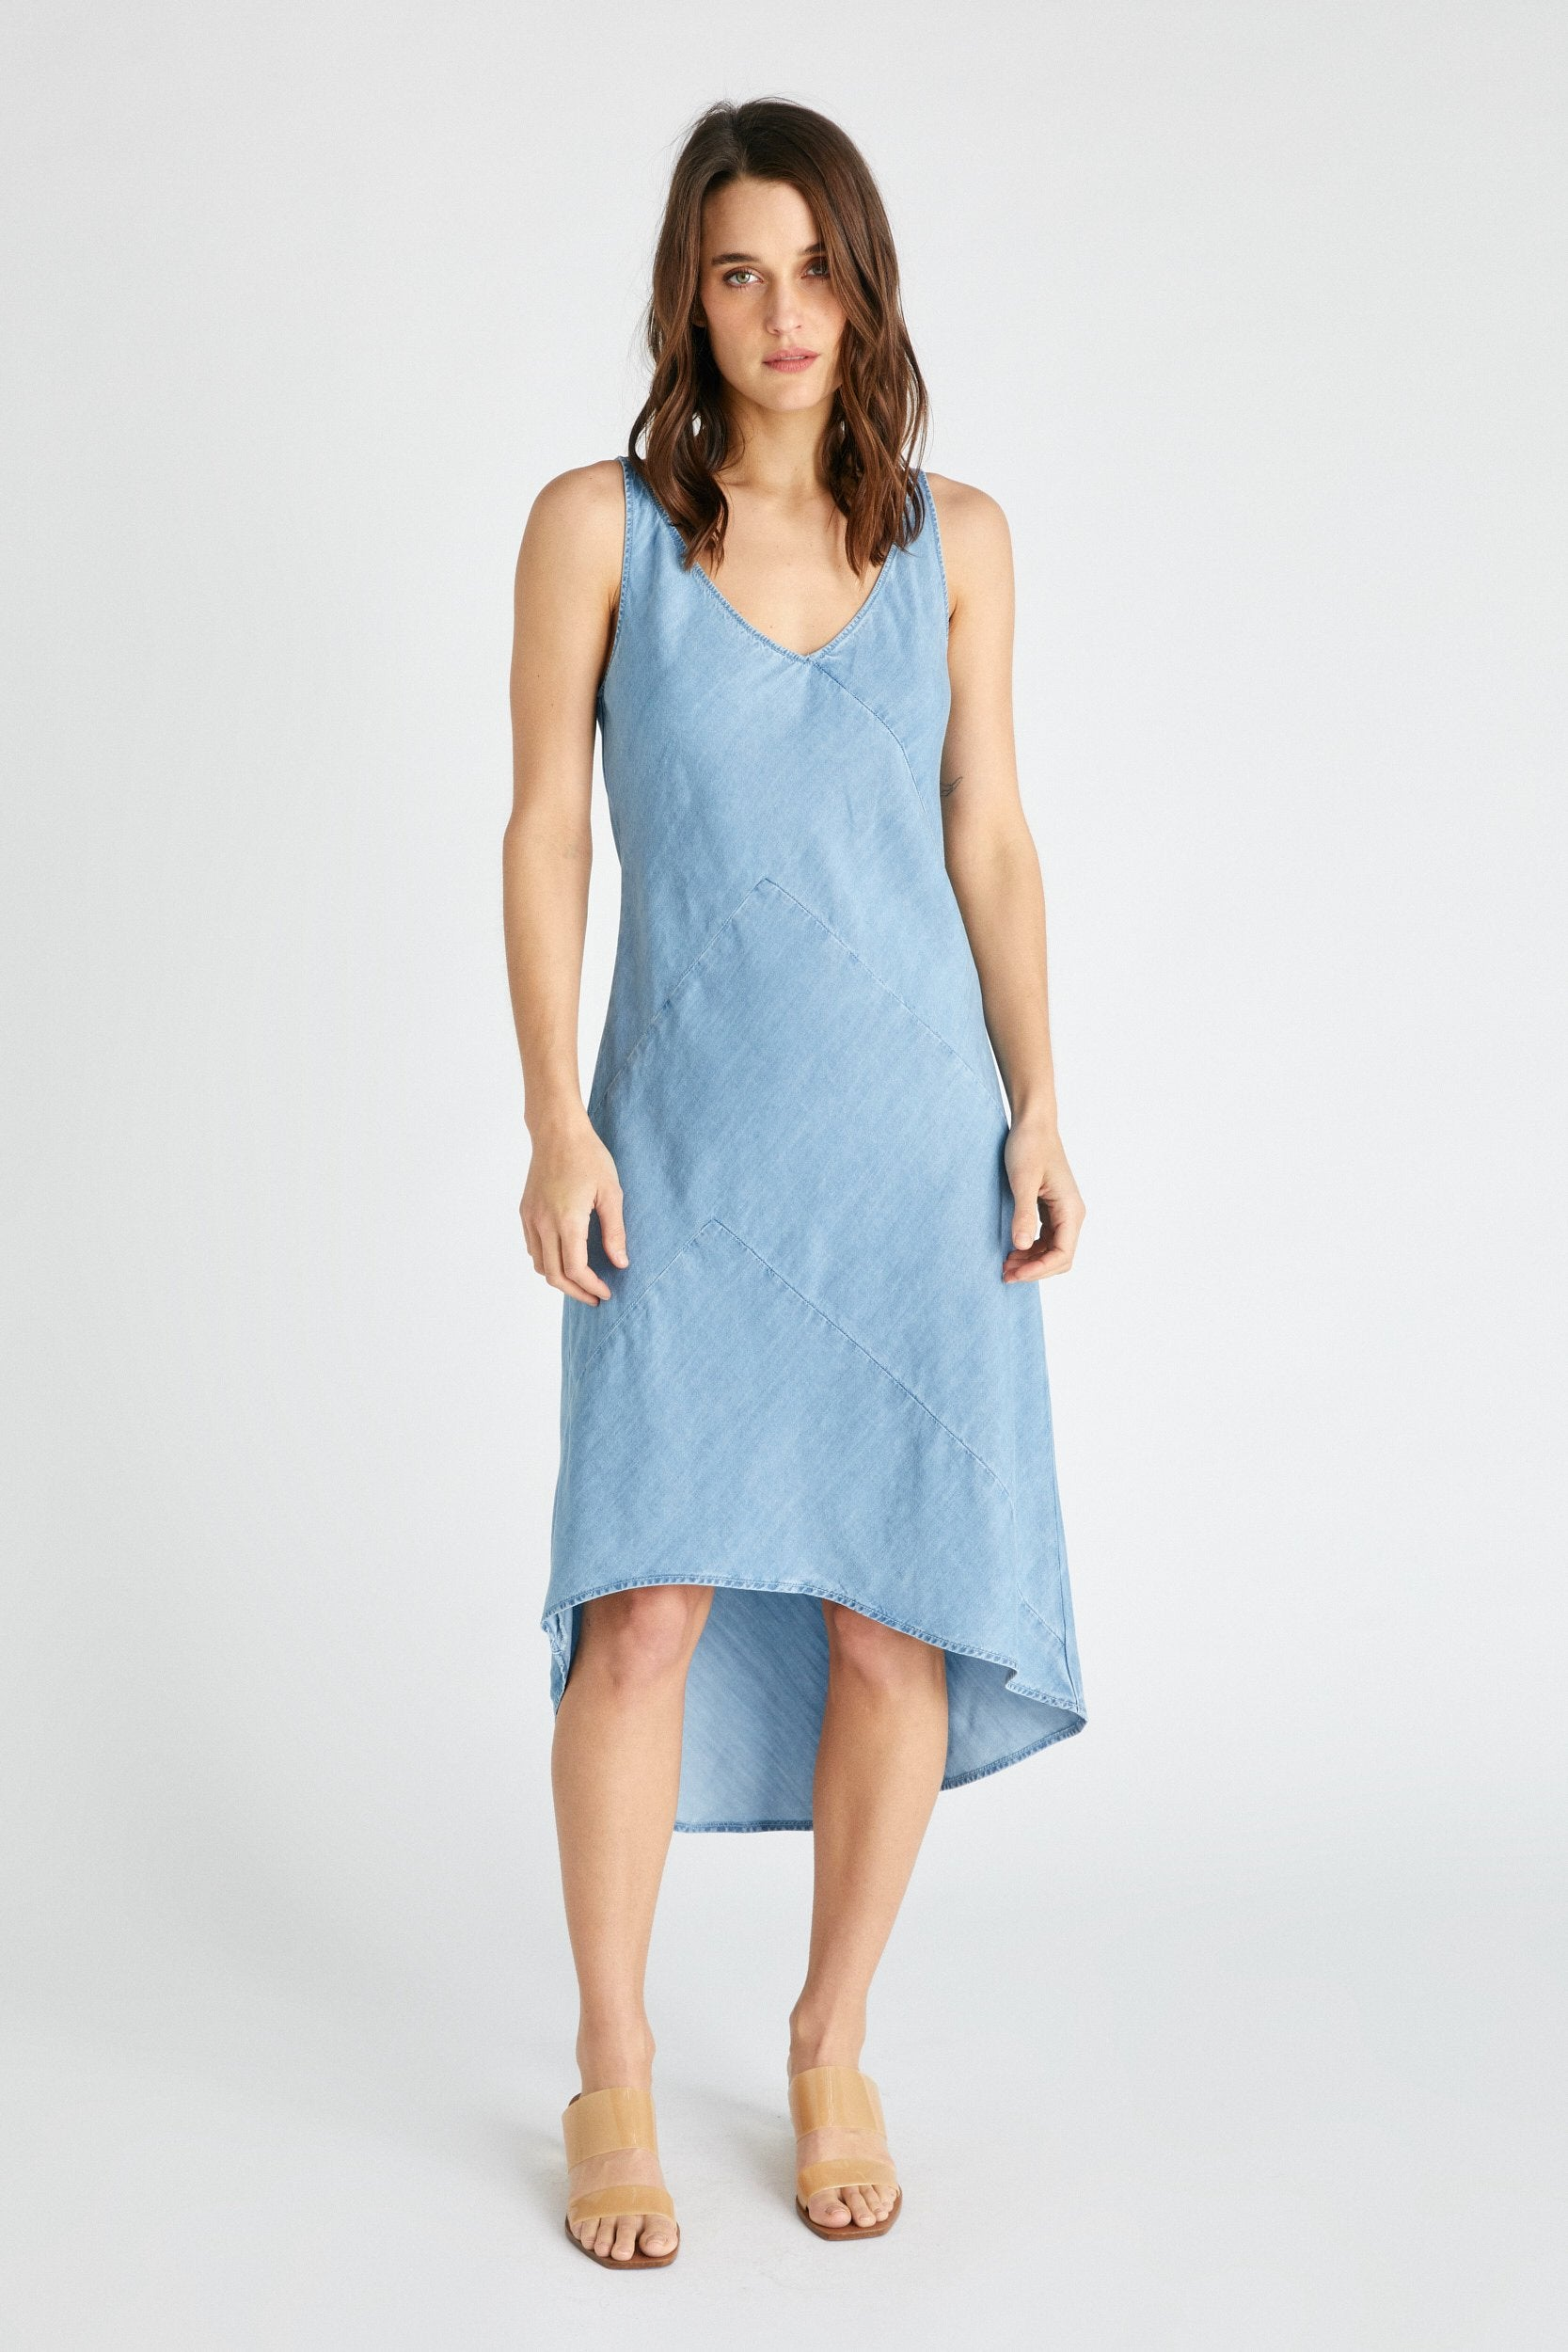 Shanti Slip Dress - Daybreak